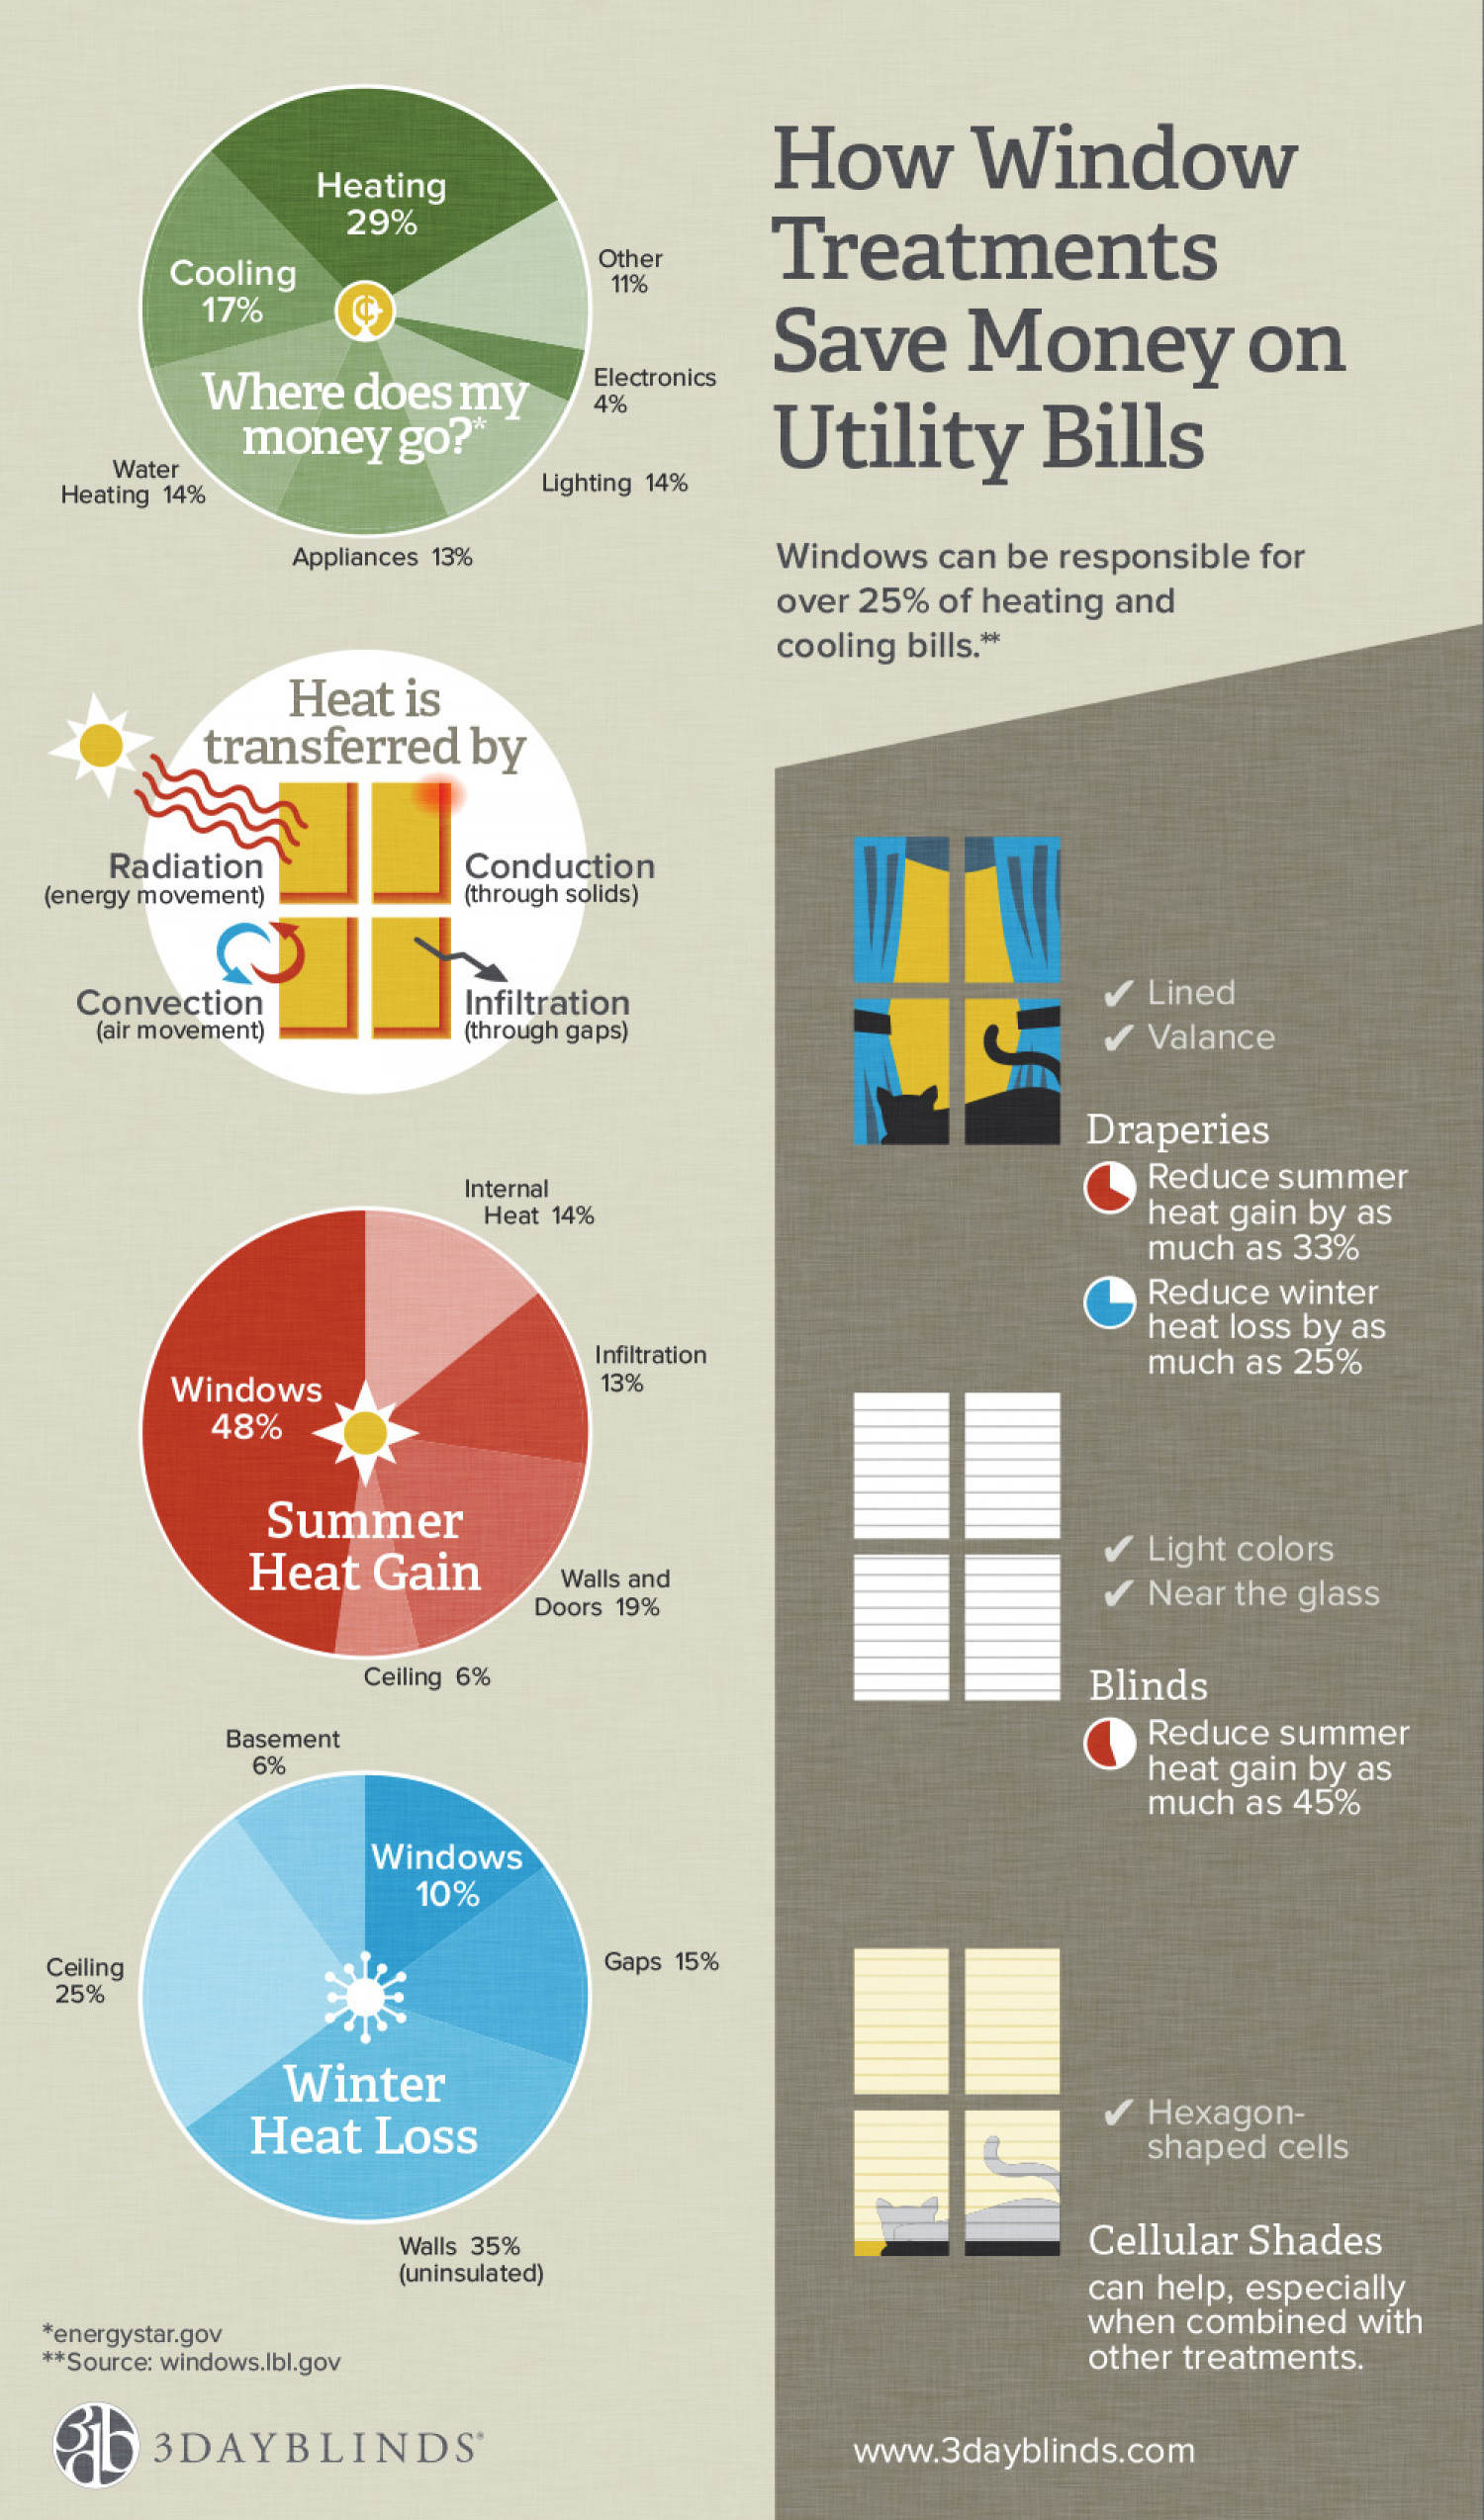 Save Money on Utilities with Window Treatments Infographic